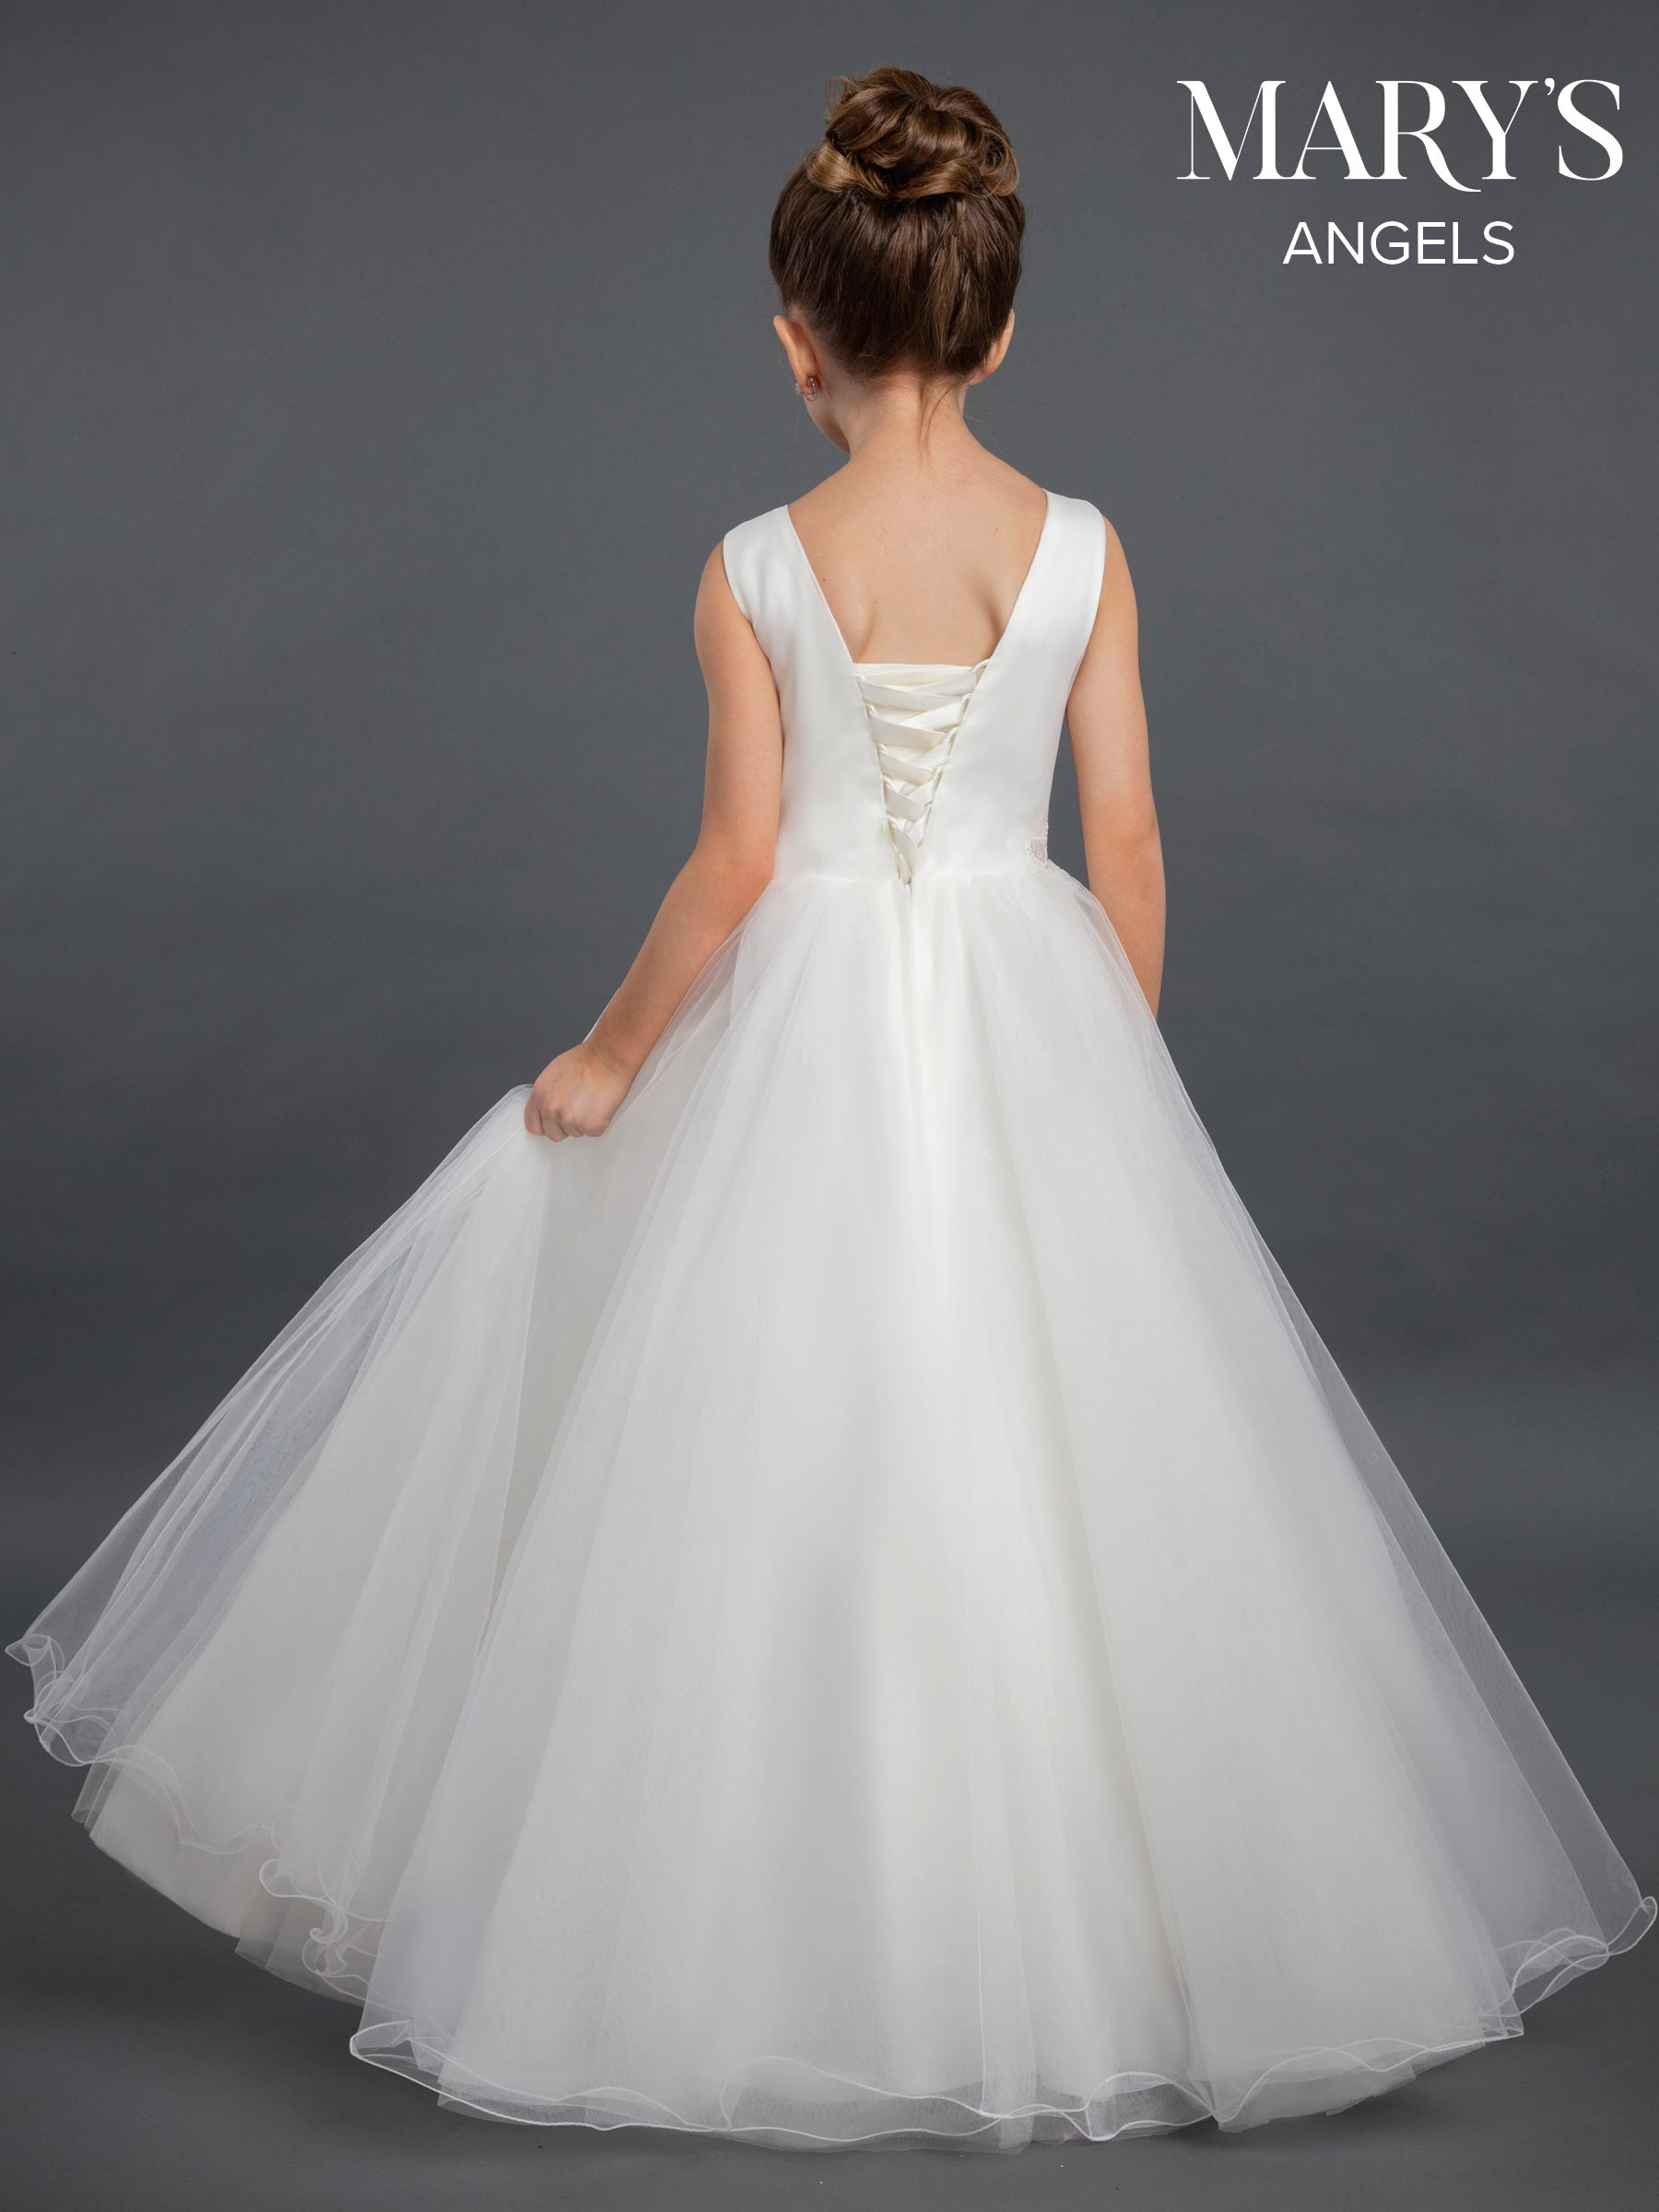 Angel Flower Girl Dresses | Mary's Angels | Style - MB9022